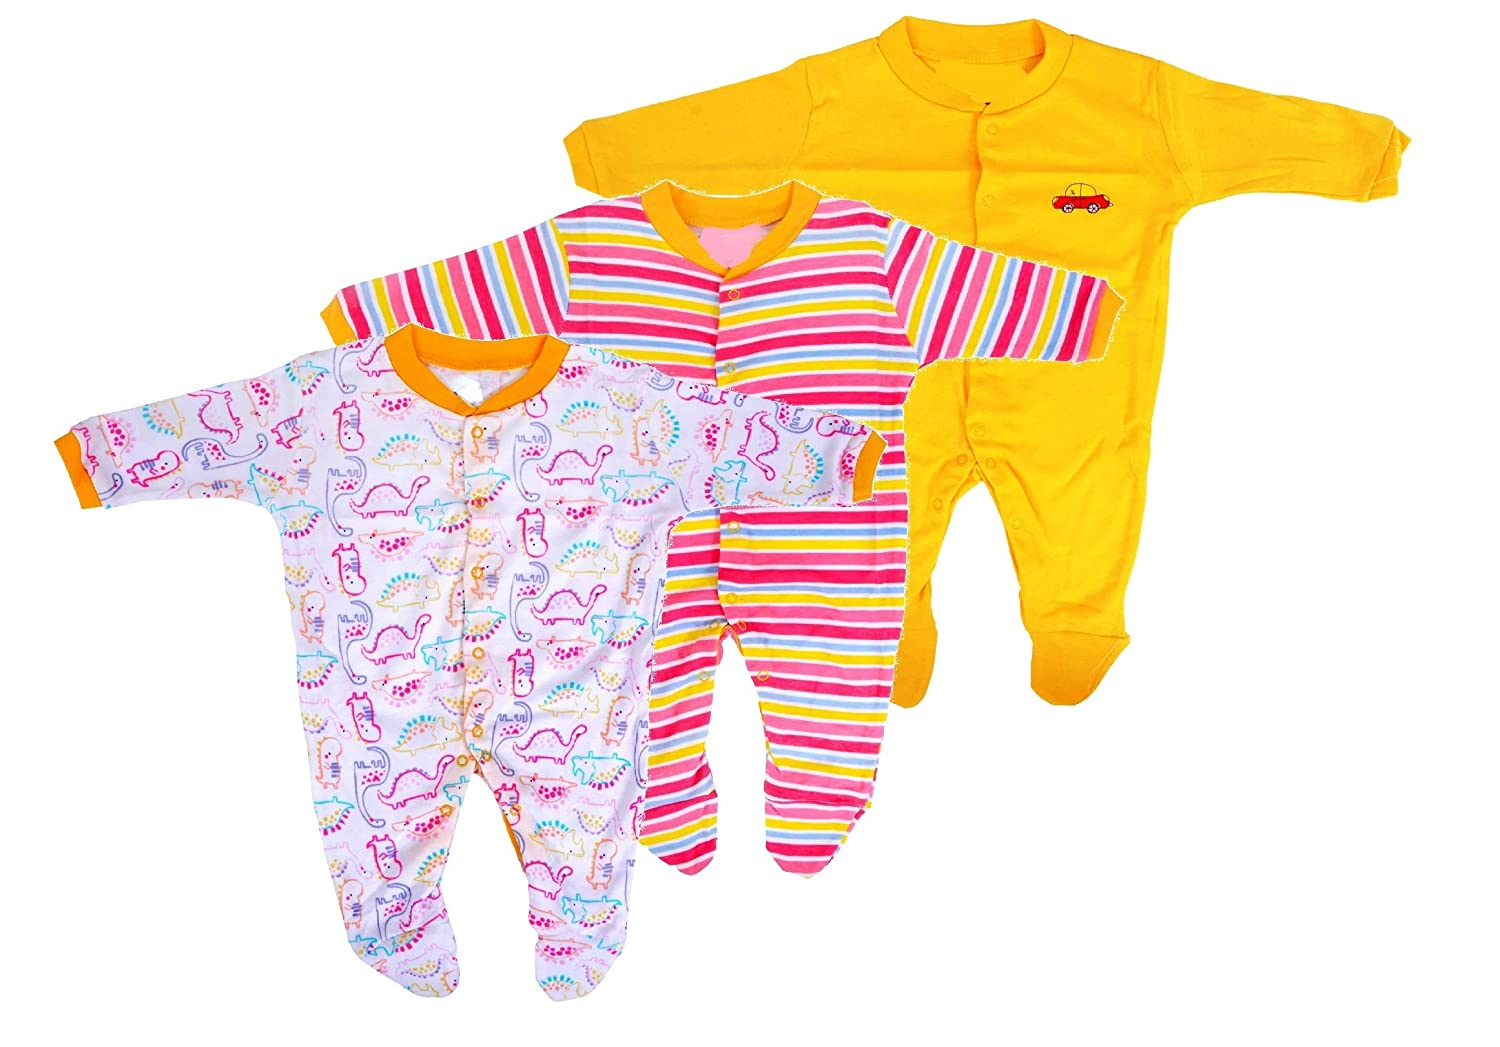 eaebcd183 Baby Grow New Born Baby Multi-Color Long Sleeve Cotton Sleep Suit Romper  for Boys and Girls Set of 3